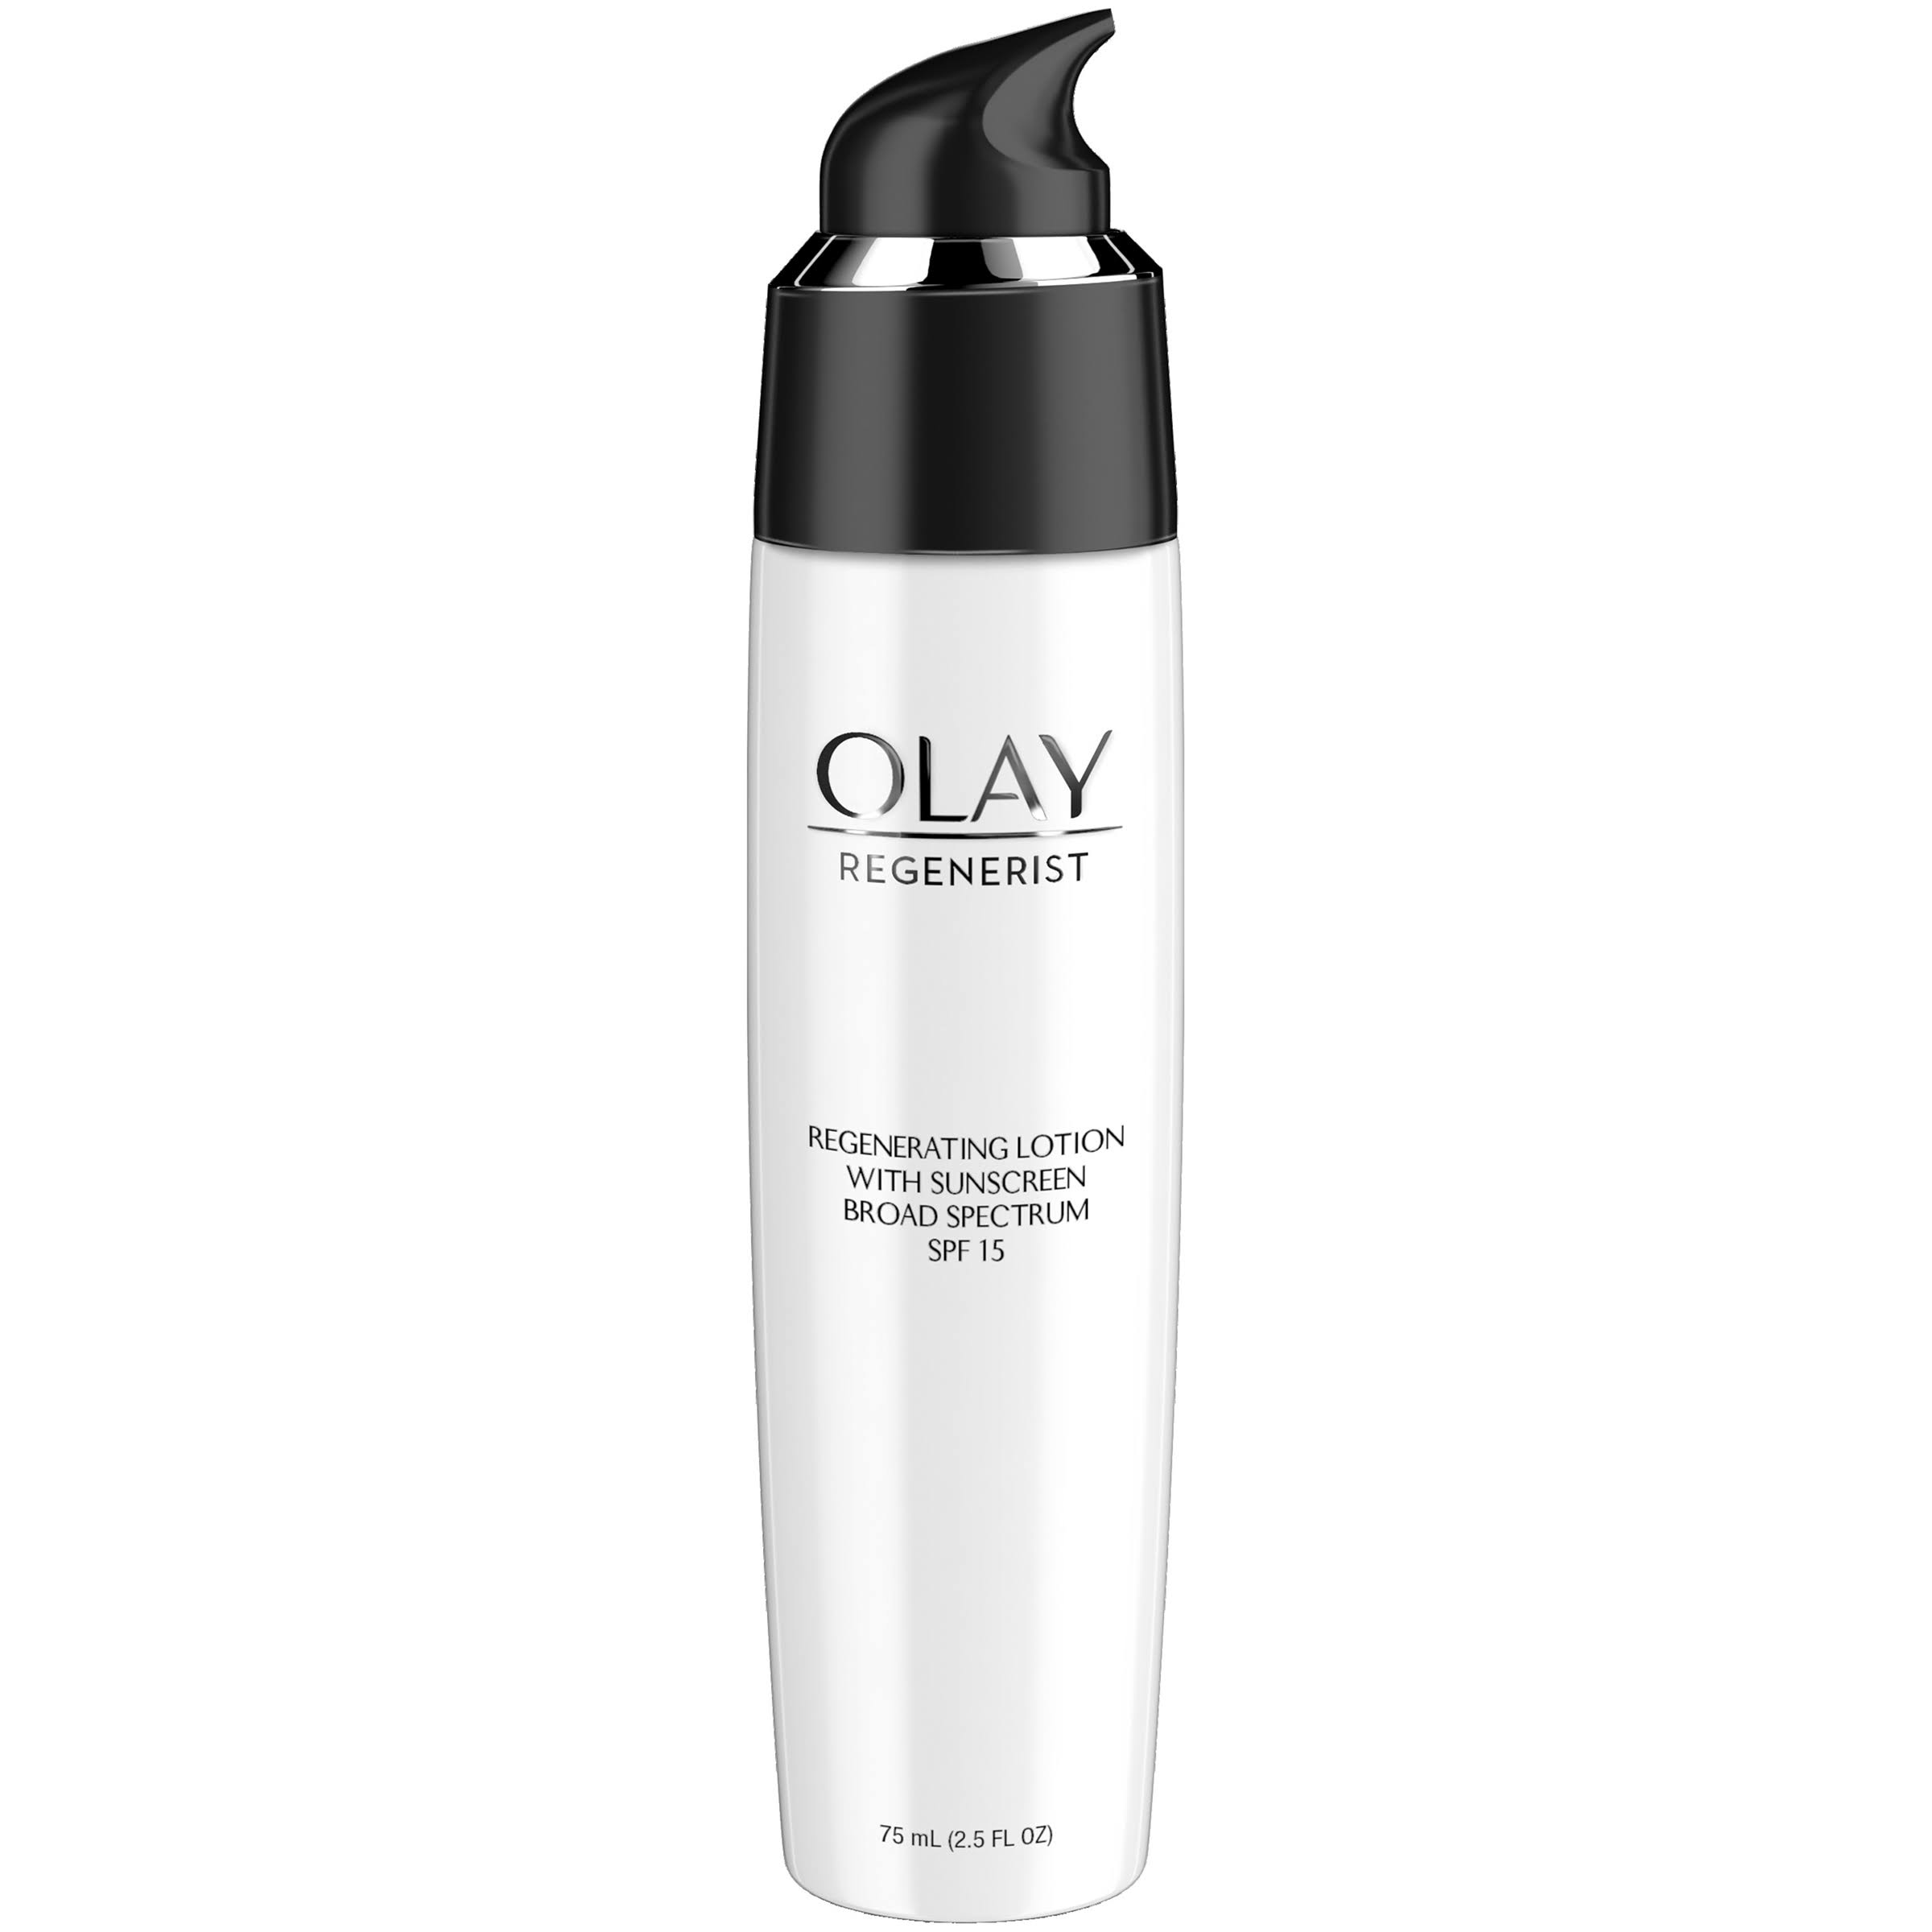 Olay Regenerist UV Defence Regenerating Lotion - SPF 15, 2.5oz